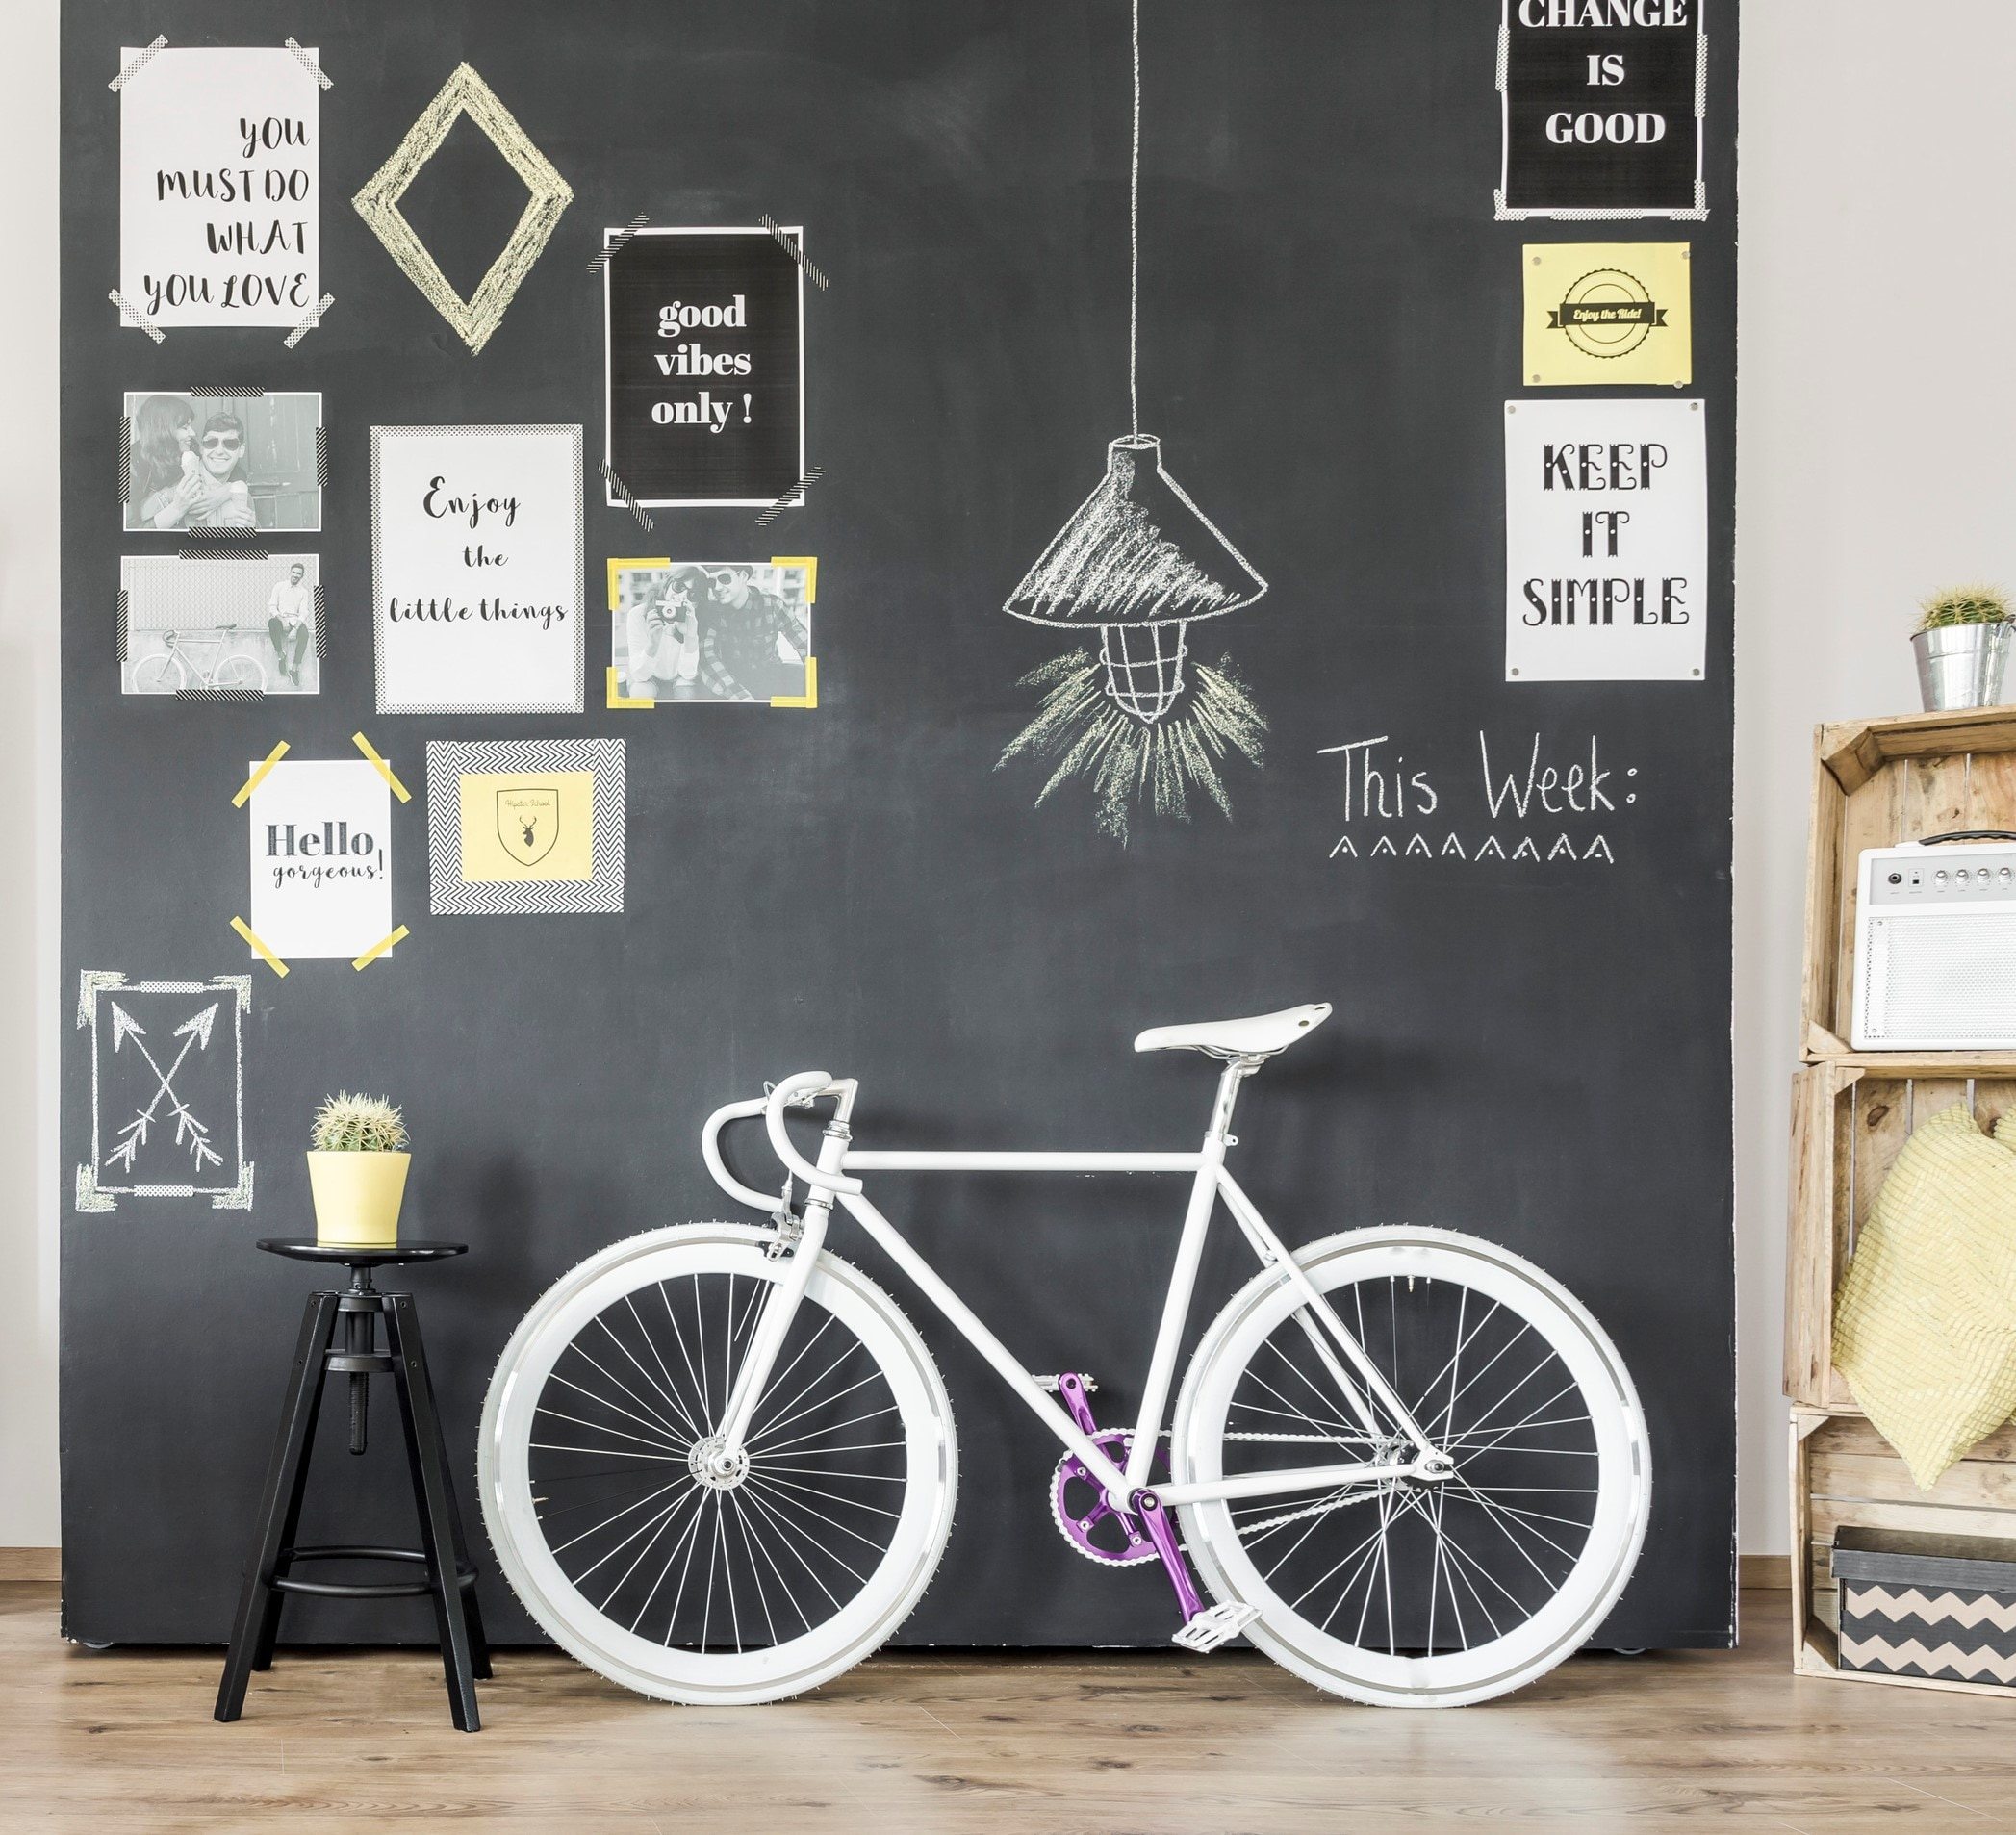 Get creative with sticky notes, motivational printouts and other stationery at home. (Getty Images/iStockphoto)